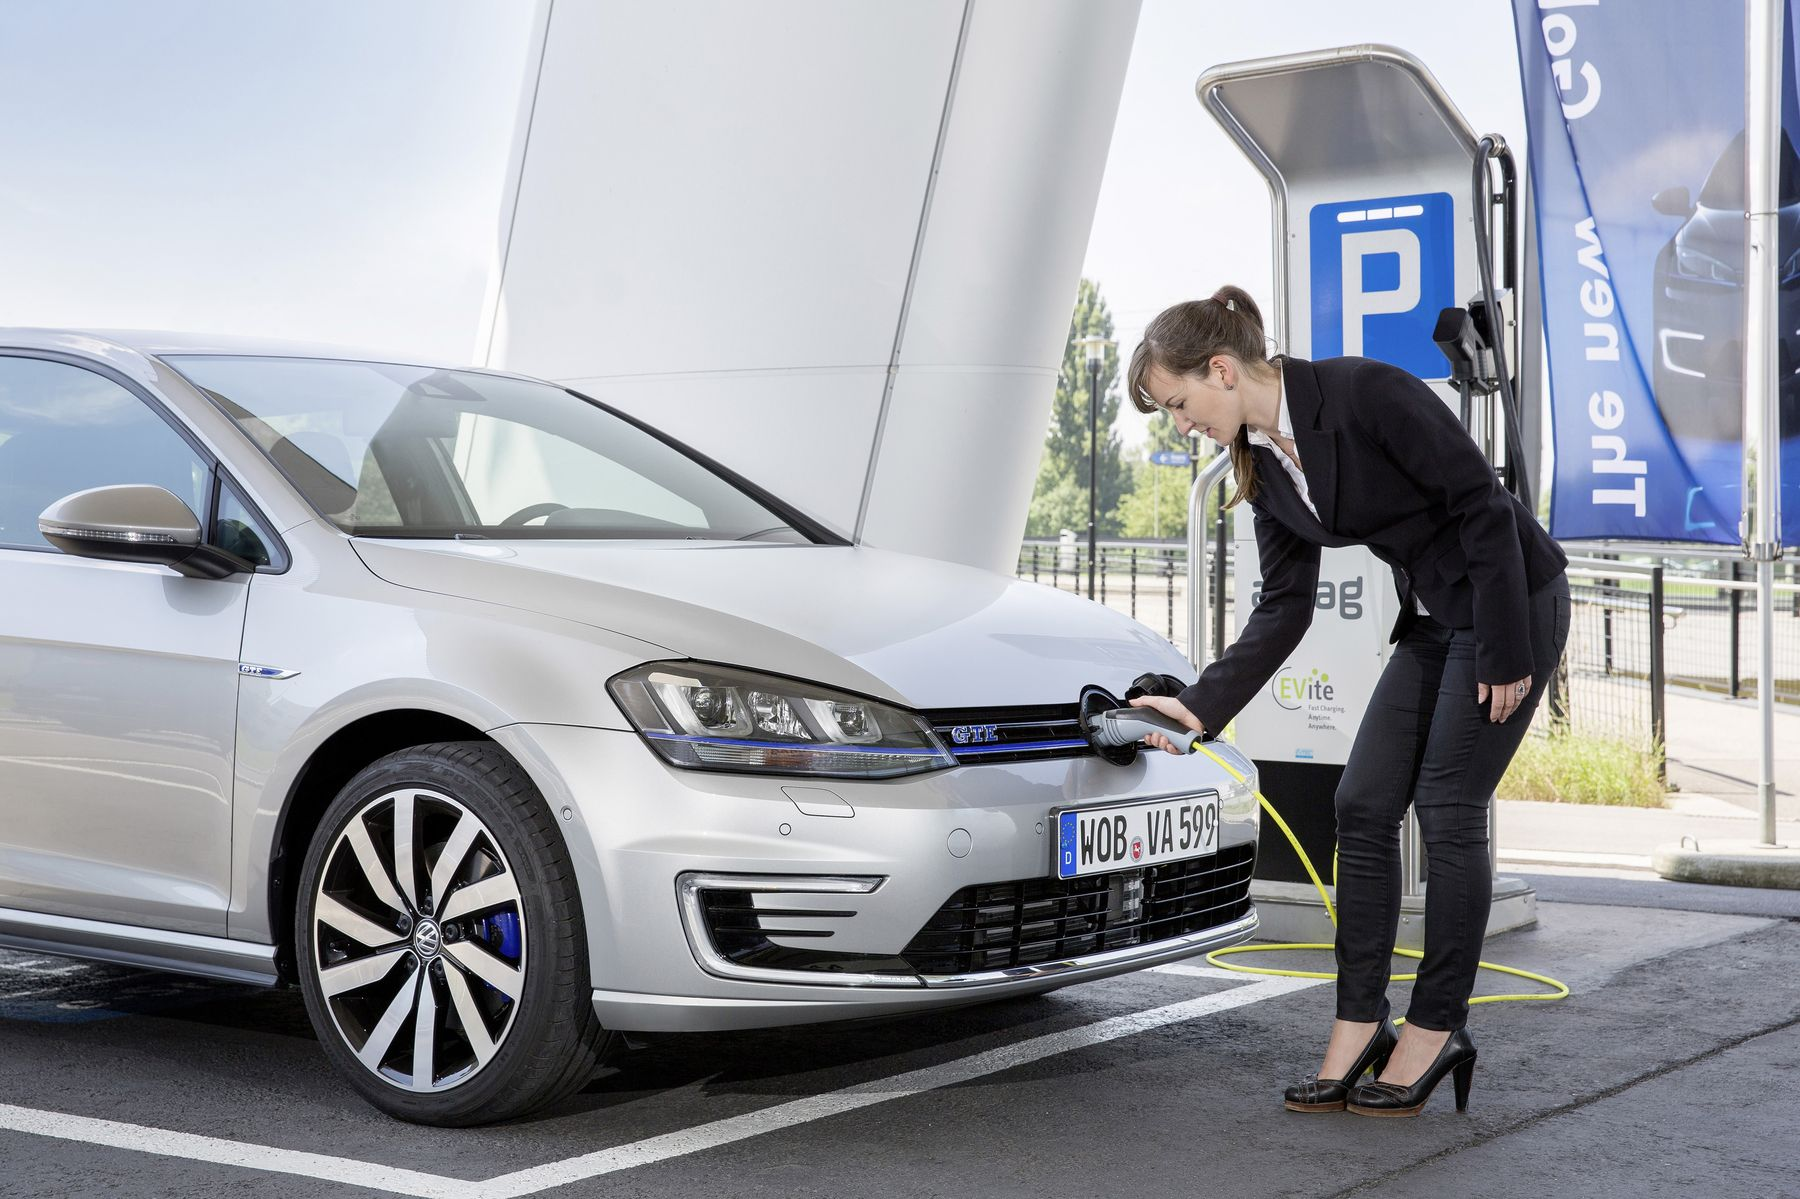 Volkswagen charging station